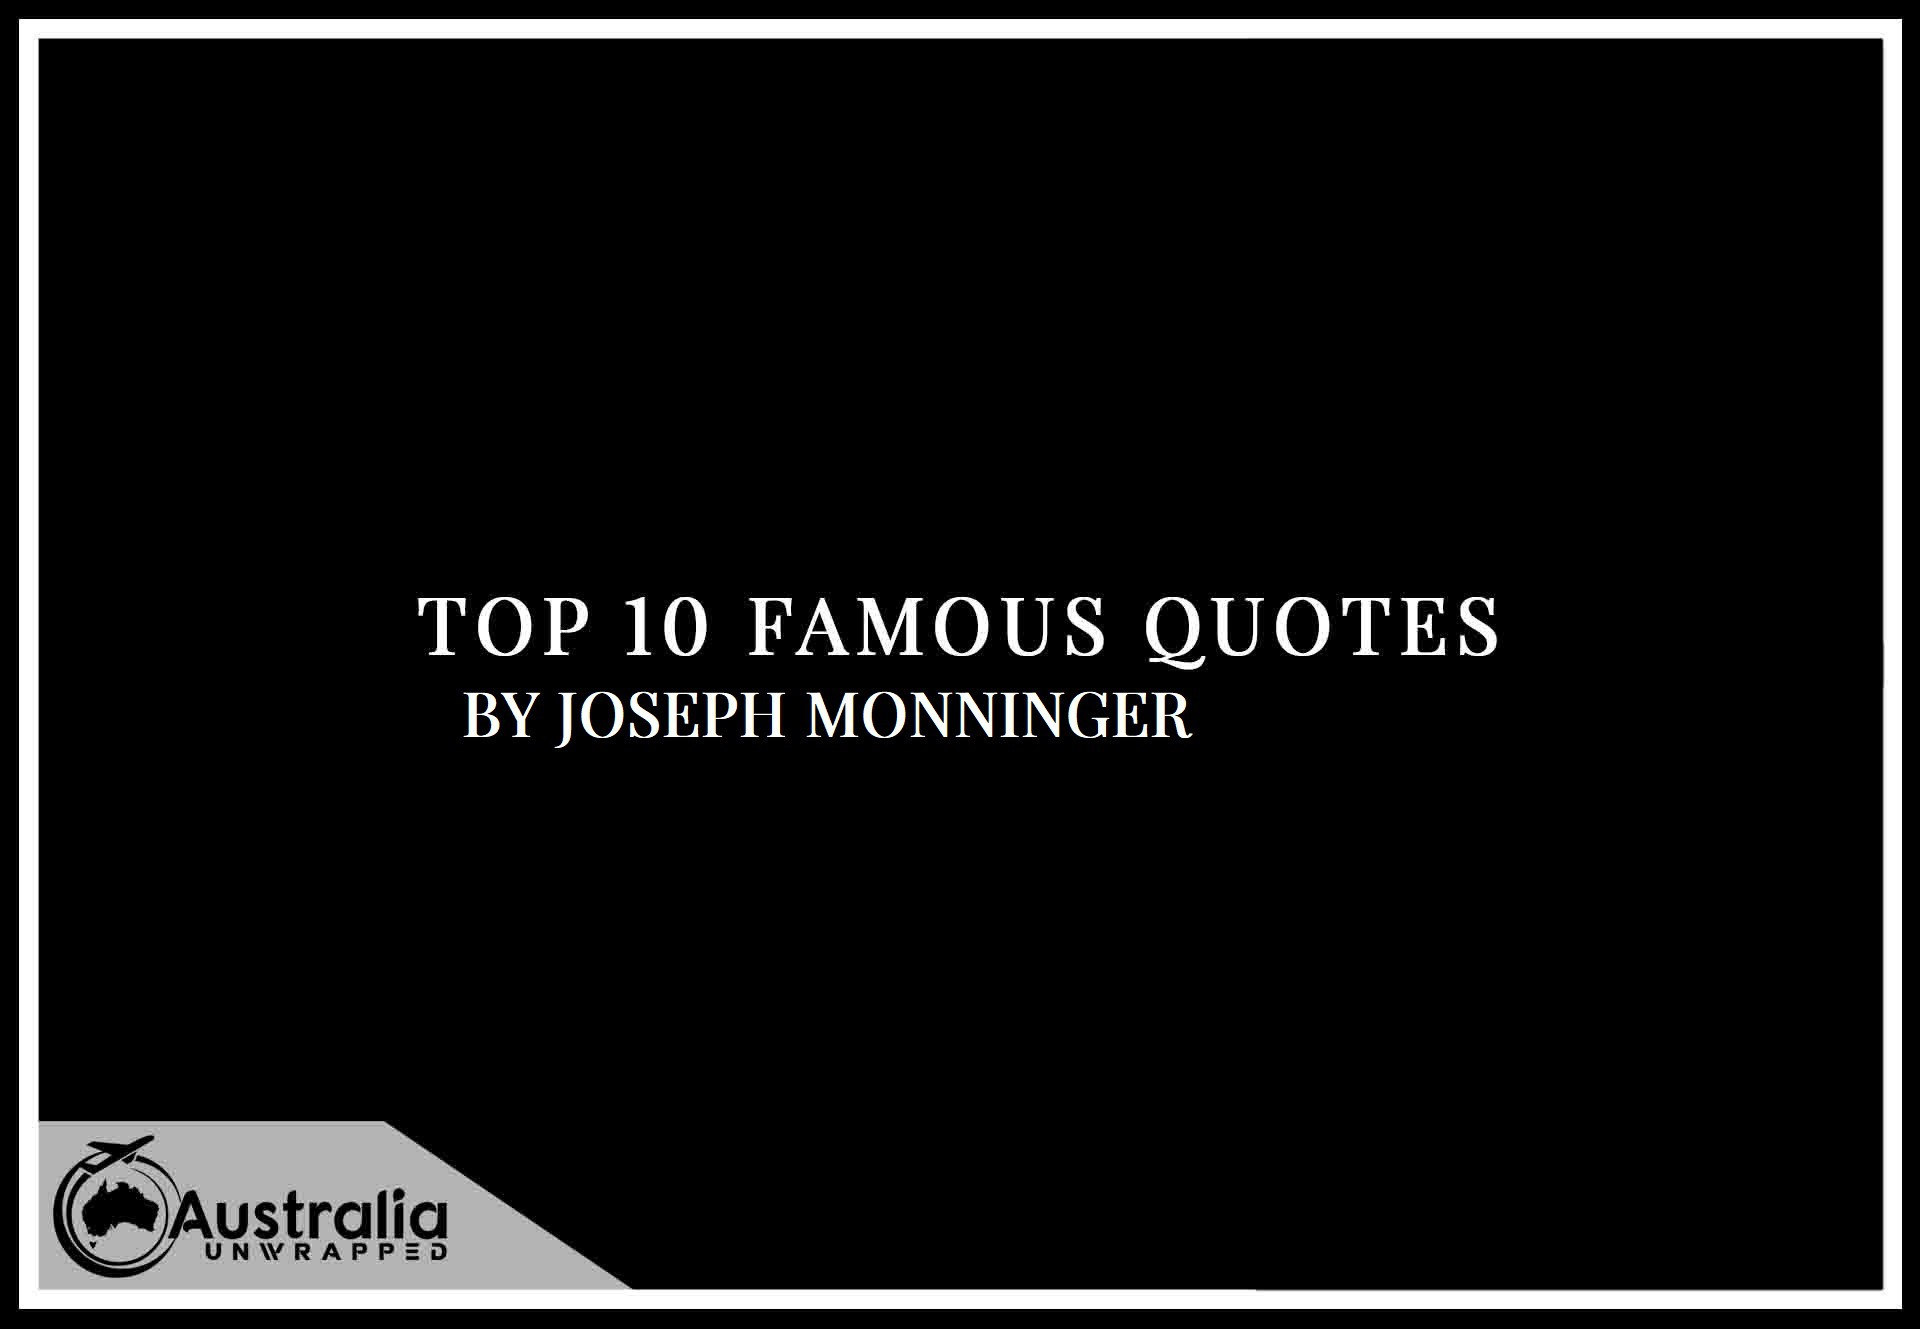 Top 10 Famous Quotes by Author Joseph Monninger